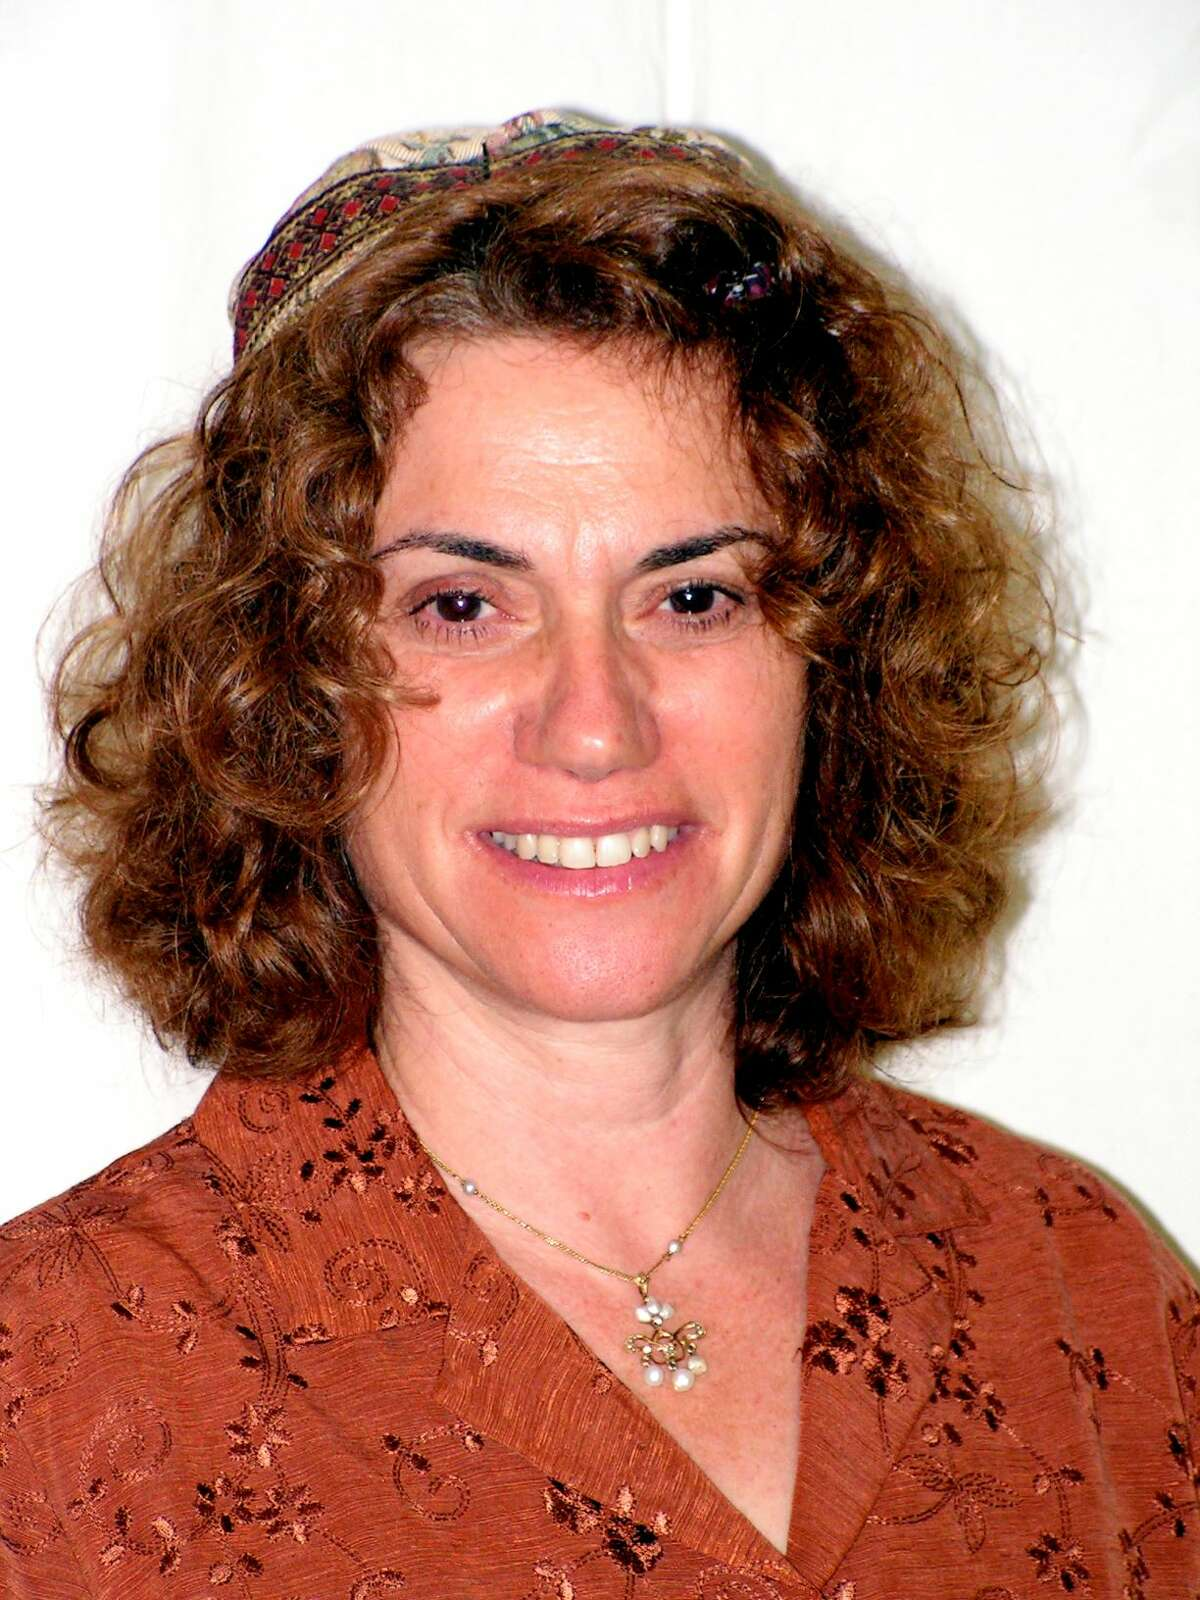 The first female congregational rabbi to serve in Israel, Rabbi Kinneret Shiryon will be visiting B'nai Sholom on Jan. 10. She is a trailblazer, the first woman to chair the Council of Progressive Rabbis in Israel and an outspoken advocate for Reform Judaism in Israel.